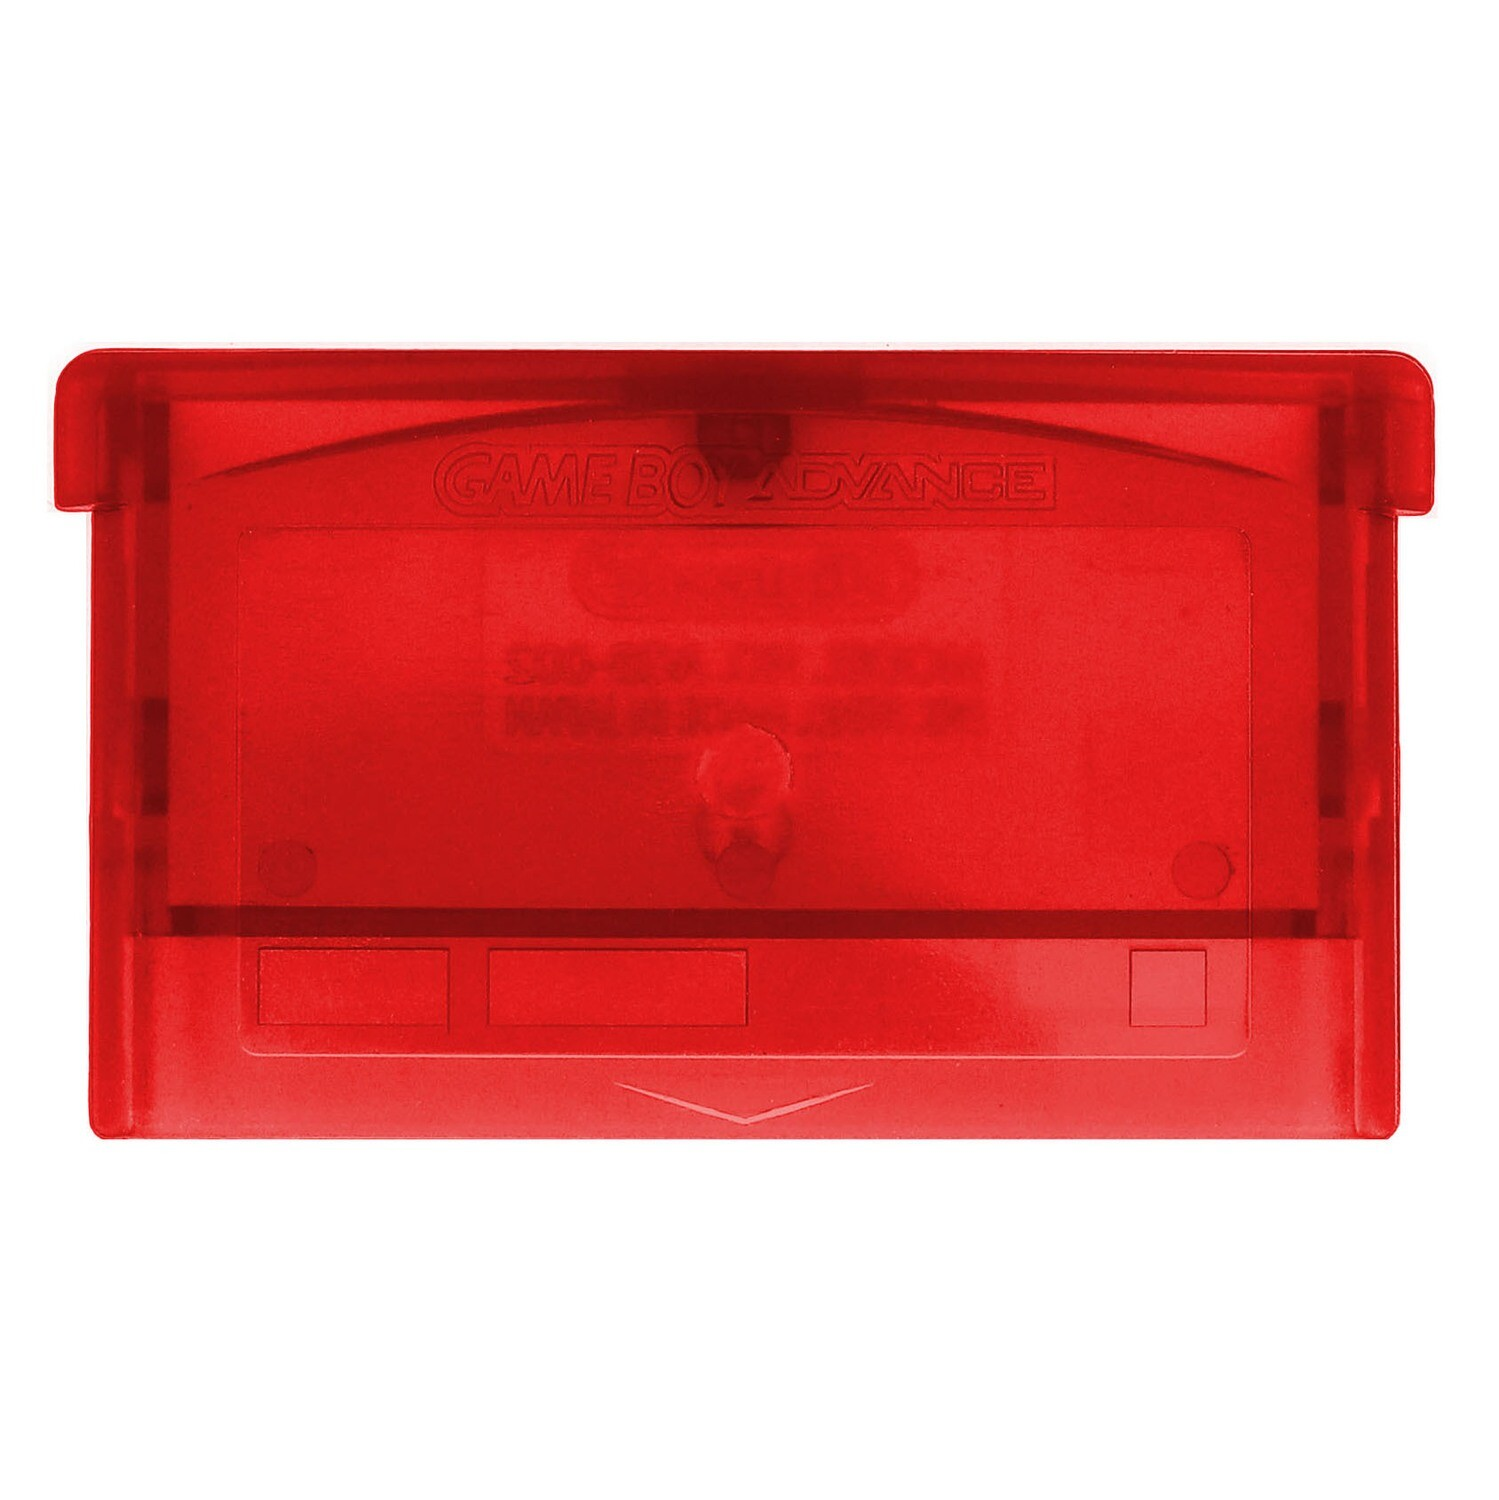 Game Boy Advance Game Cartridge (Clear Red)